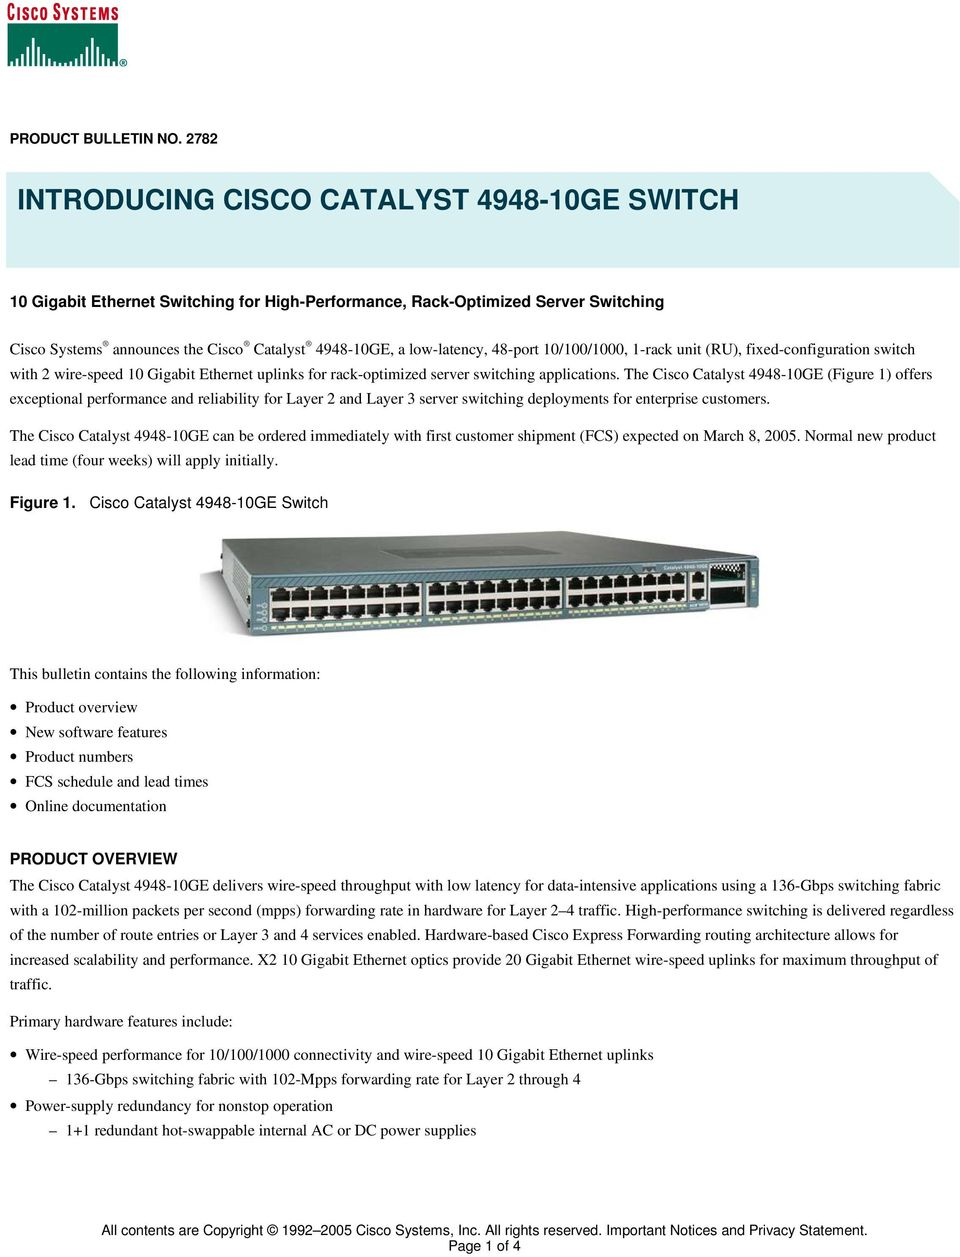 low-latency, 48-port 10/100/1000, 1-rack unit (RU), fixed-configuration switch with 2 wire-speed 10 Gigabit Ethernet uplinks for rack-optimized server switching applications.